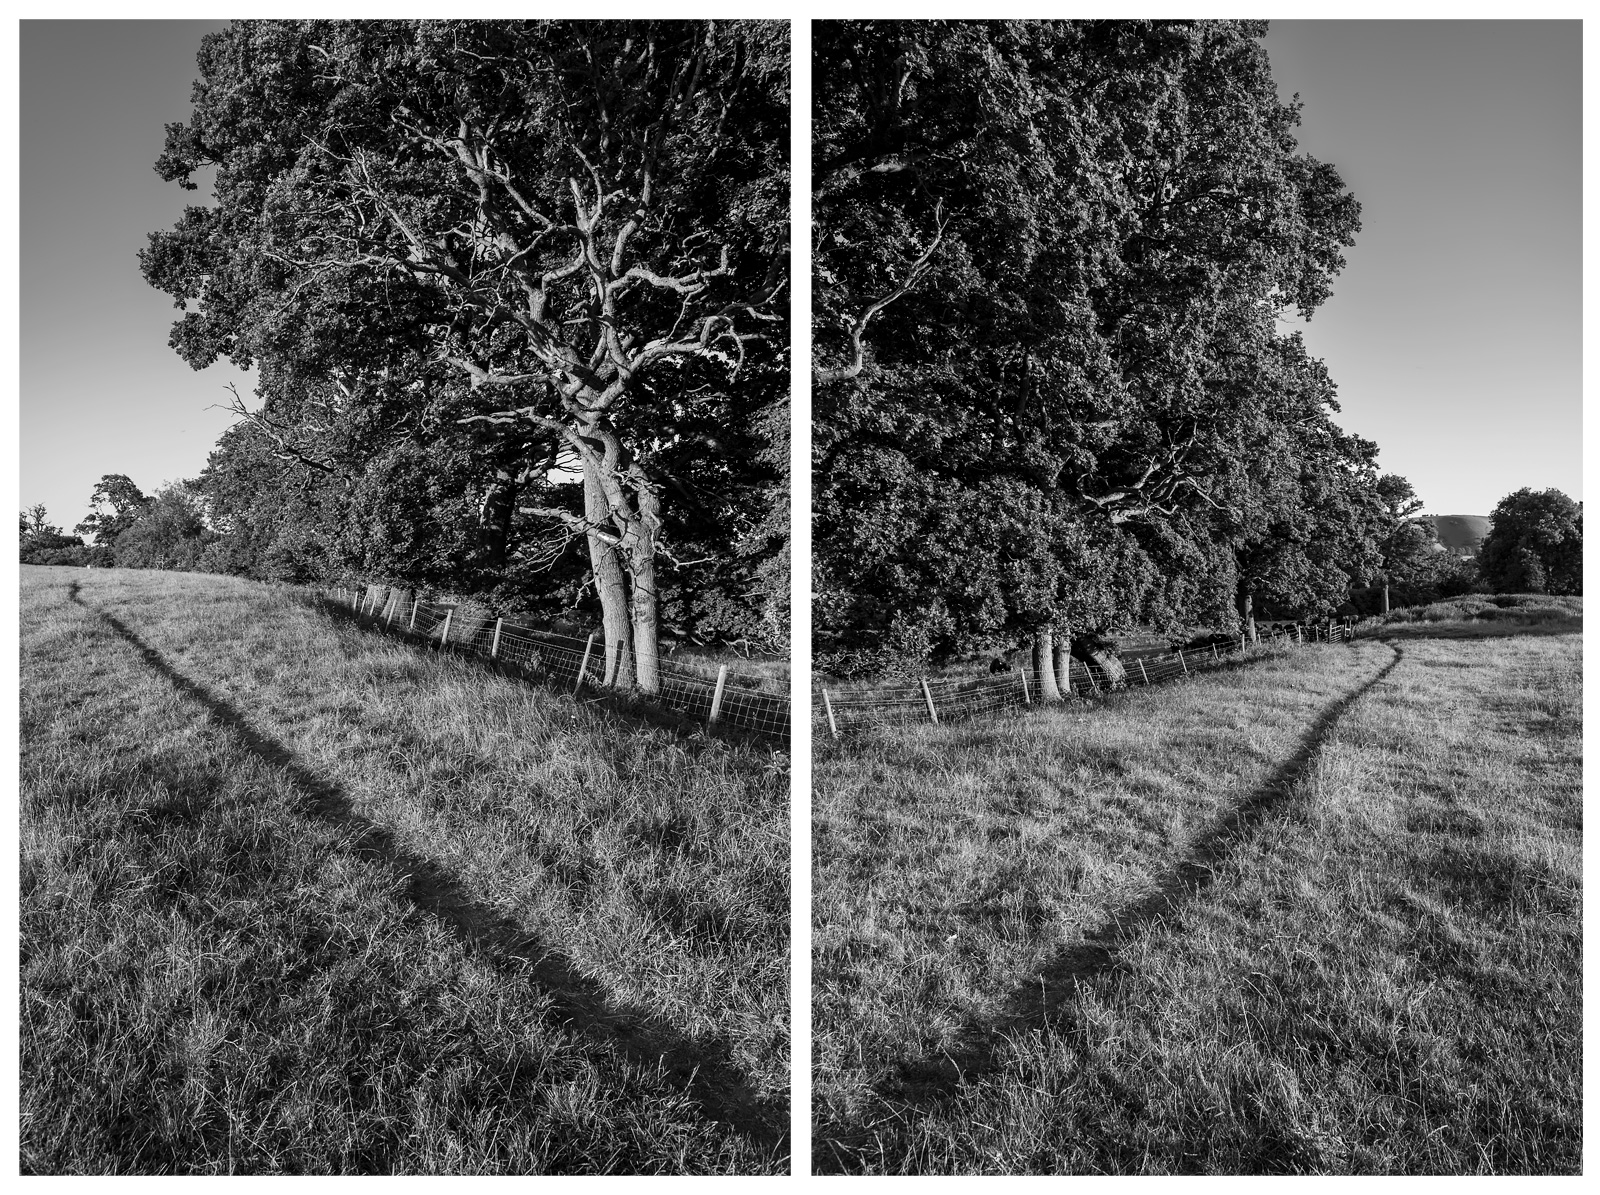 Pathway by Oak trees along meadow margin near Clappers Lane West Sussex UK black and white rural diptych British countryside with South downs in distance © P. Maton 2018 eyeteeth.net